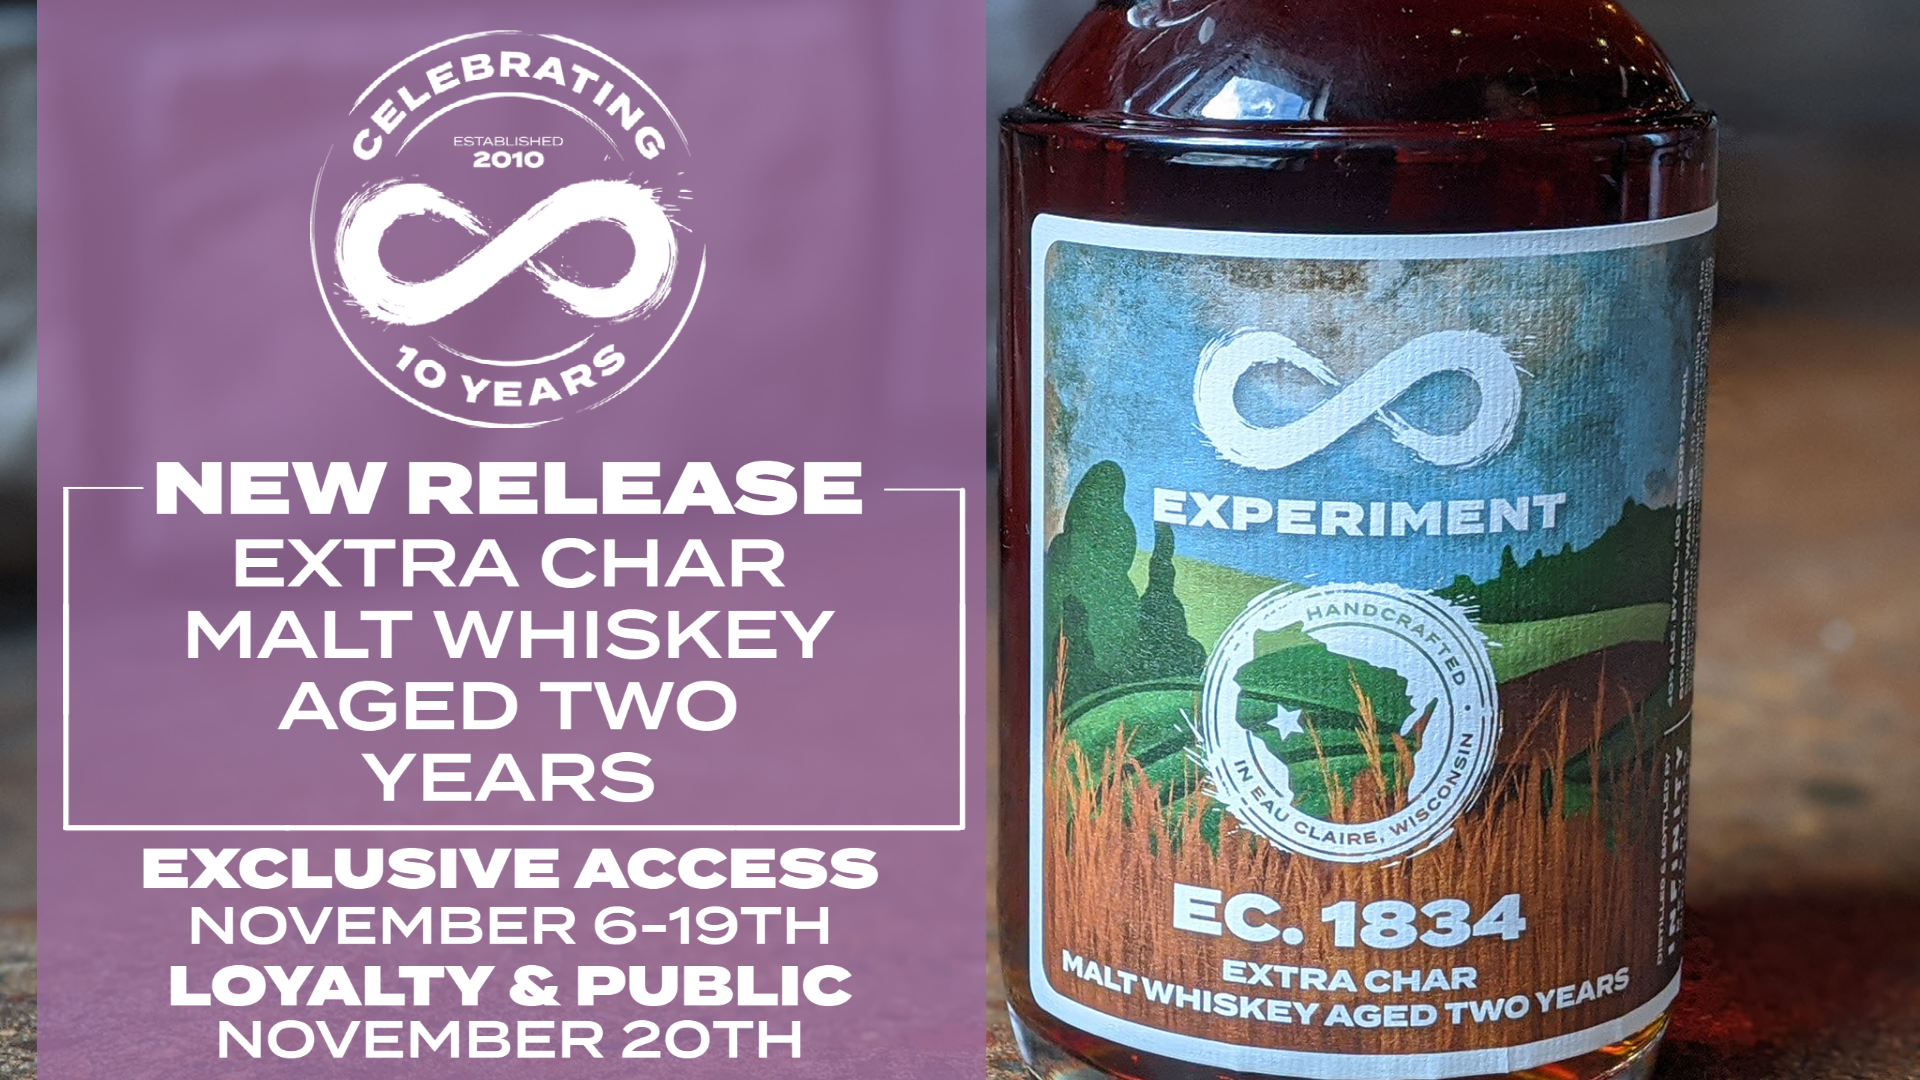 EXTRA CHAR 2 YEAR AGED SINGLE MALT WHISKEY